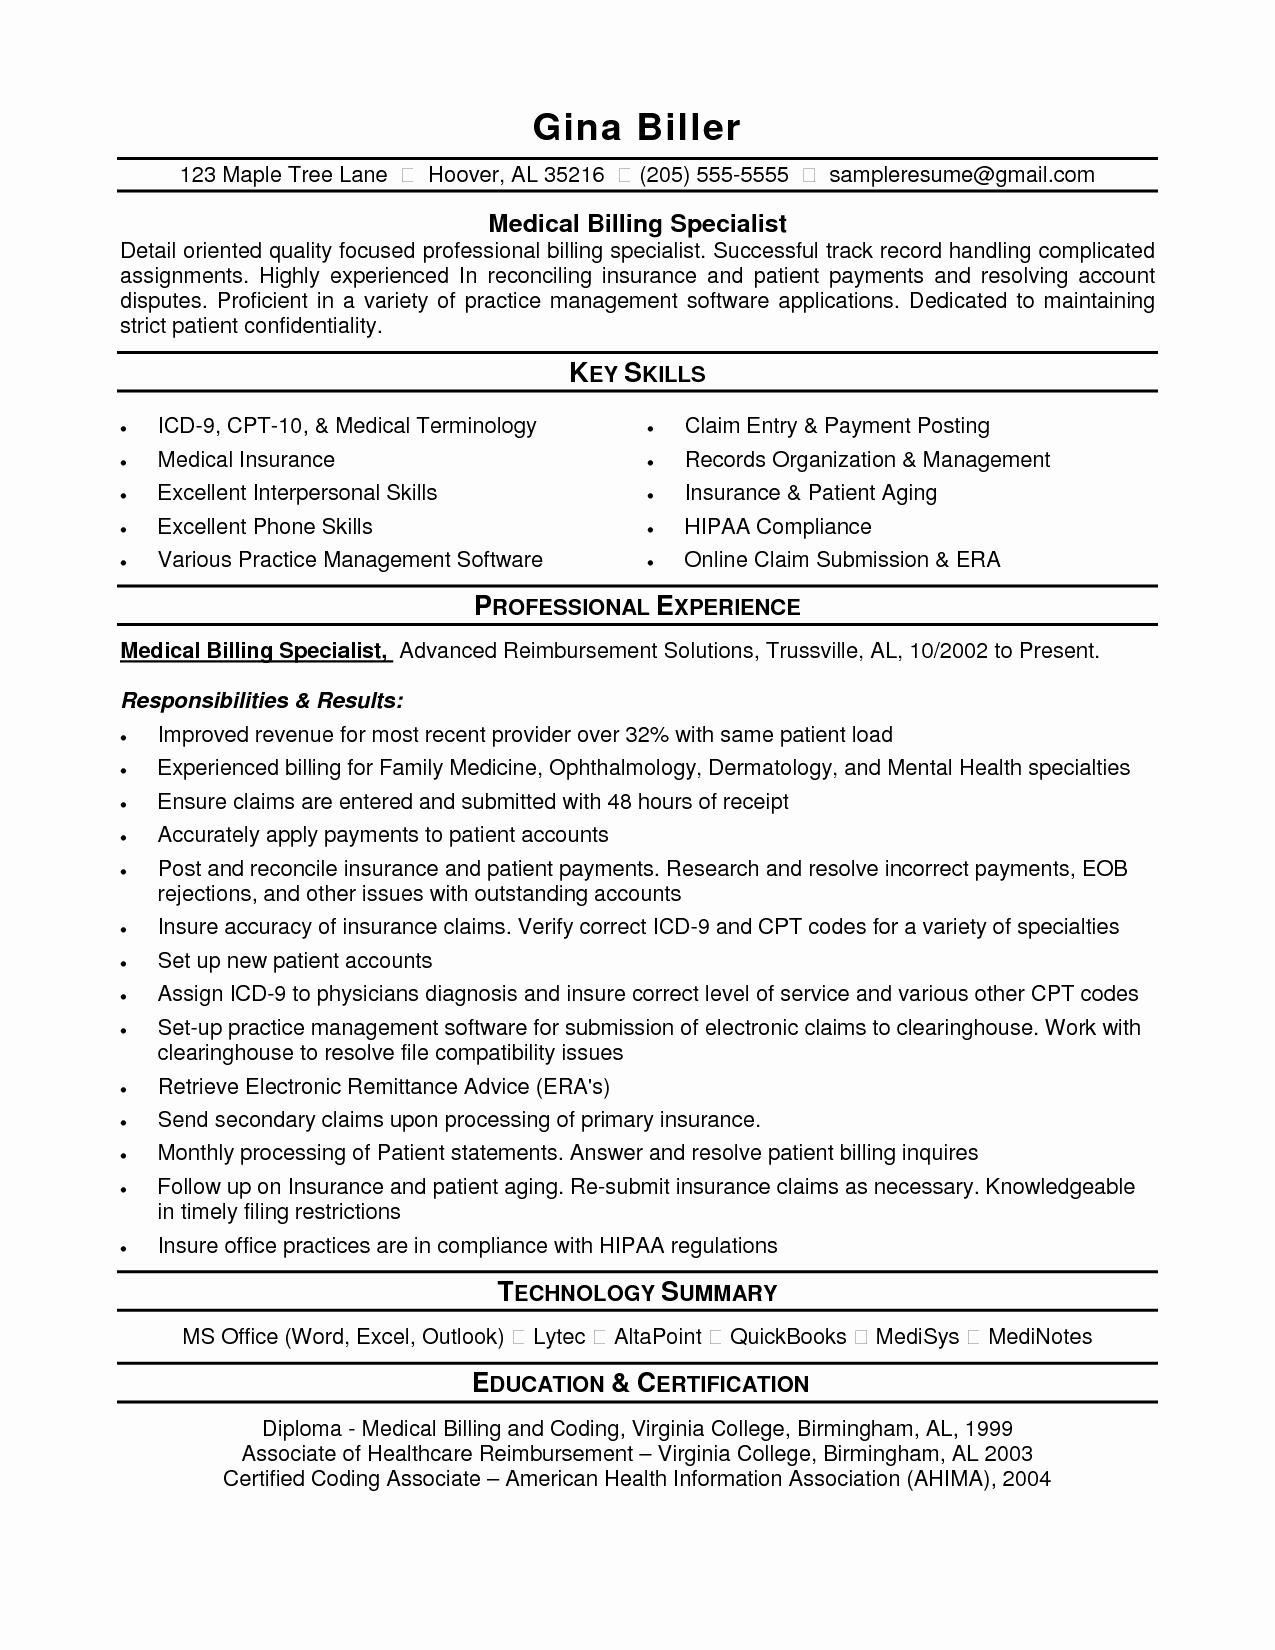 Resumes for Medical Coders - Medical Coding Fresher Resume Samples Resume Resume Examples